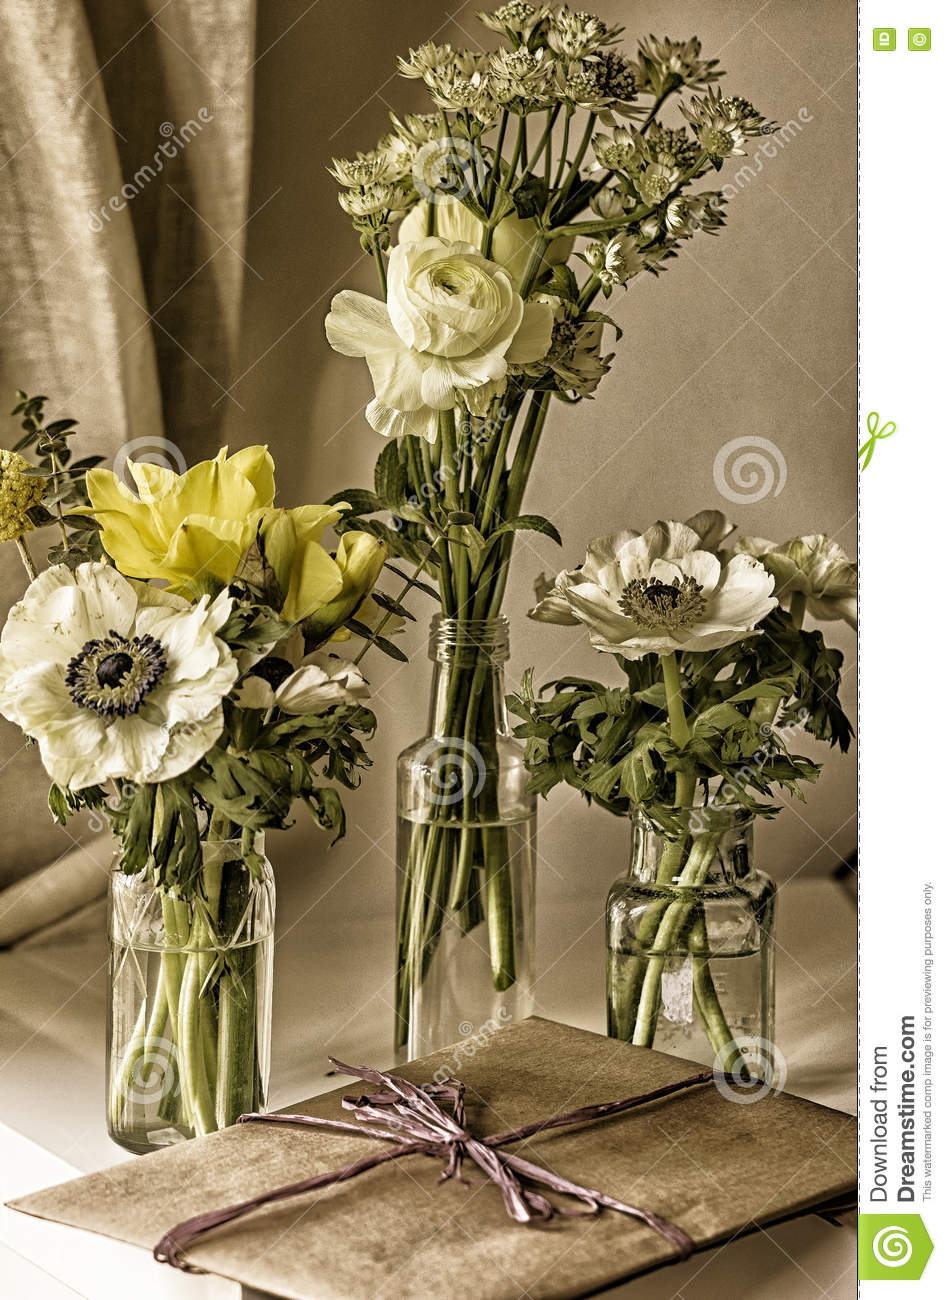 Jam Jar Flowers Stock Photo Image Of Anemone Bottle 75159308